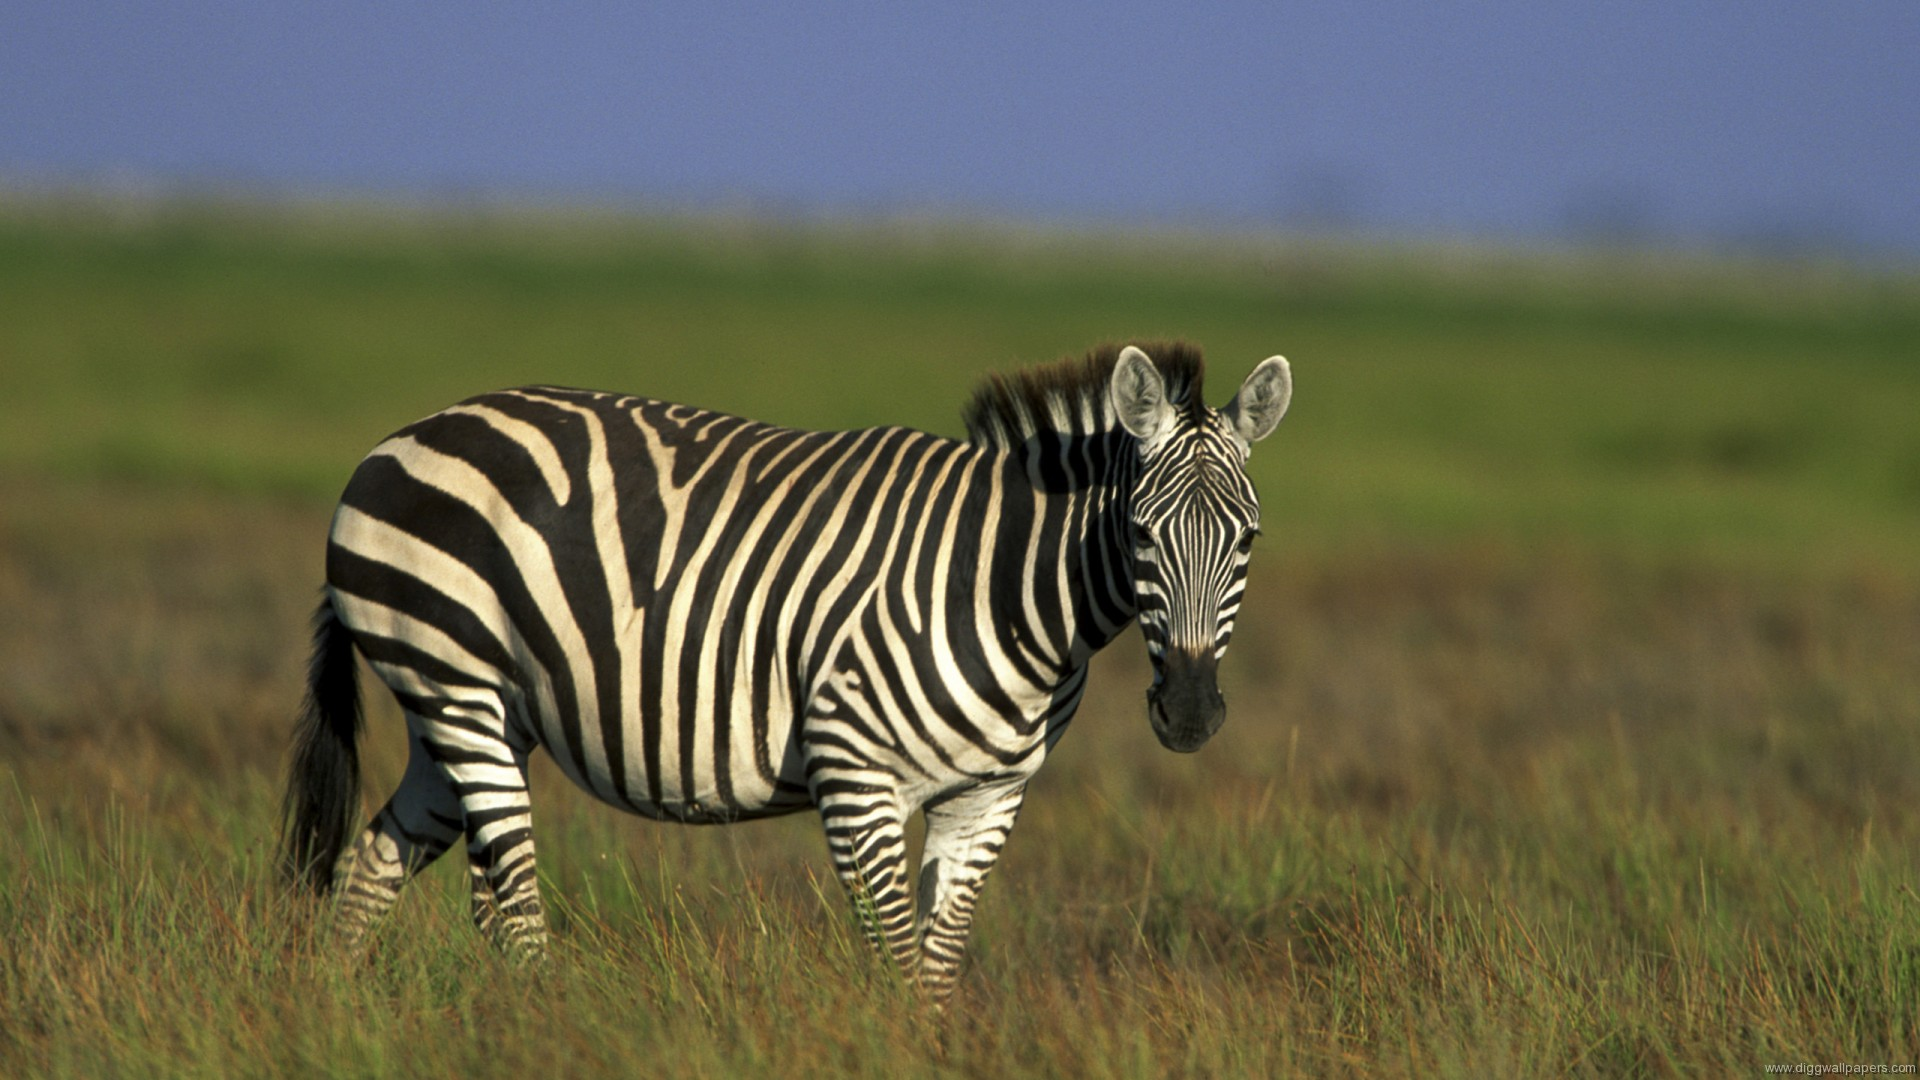 Zebra HD Wallpaper Wallpaper